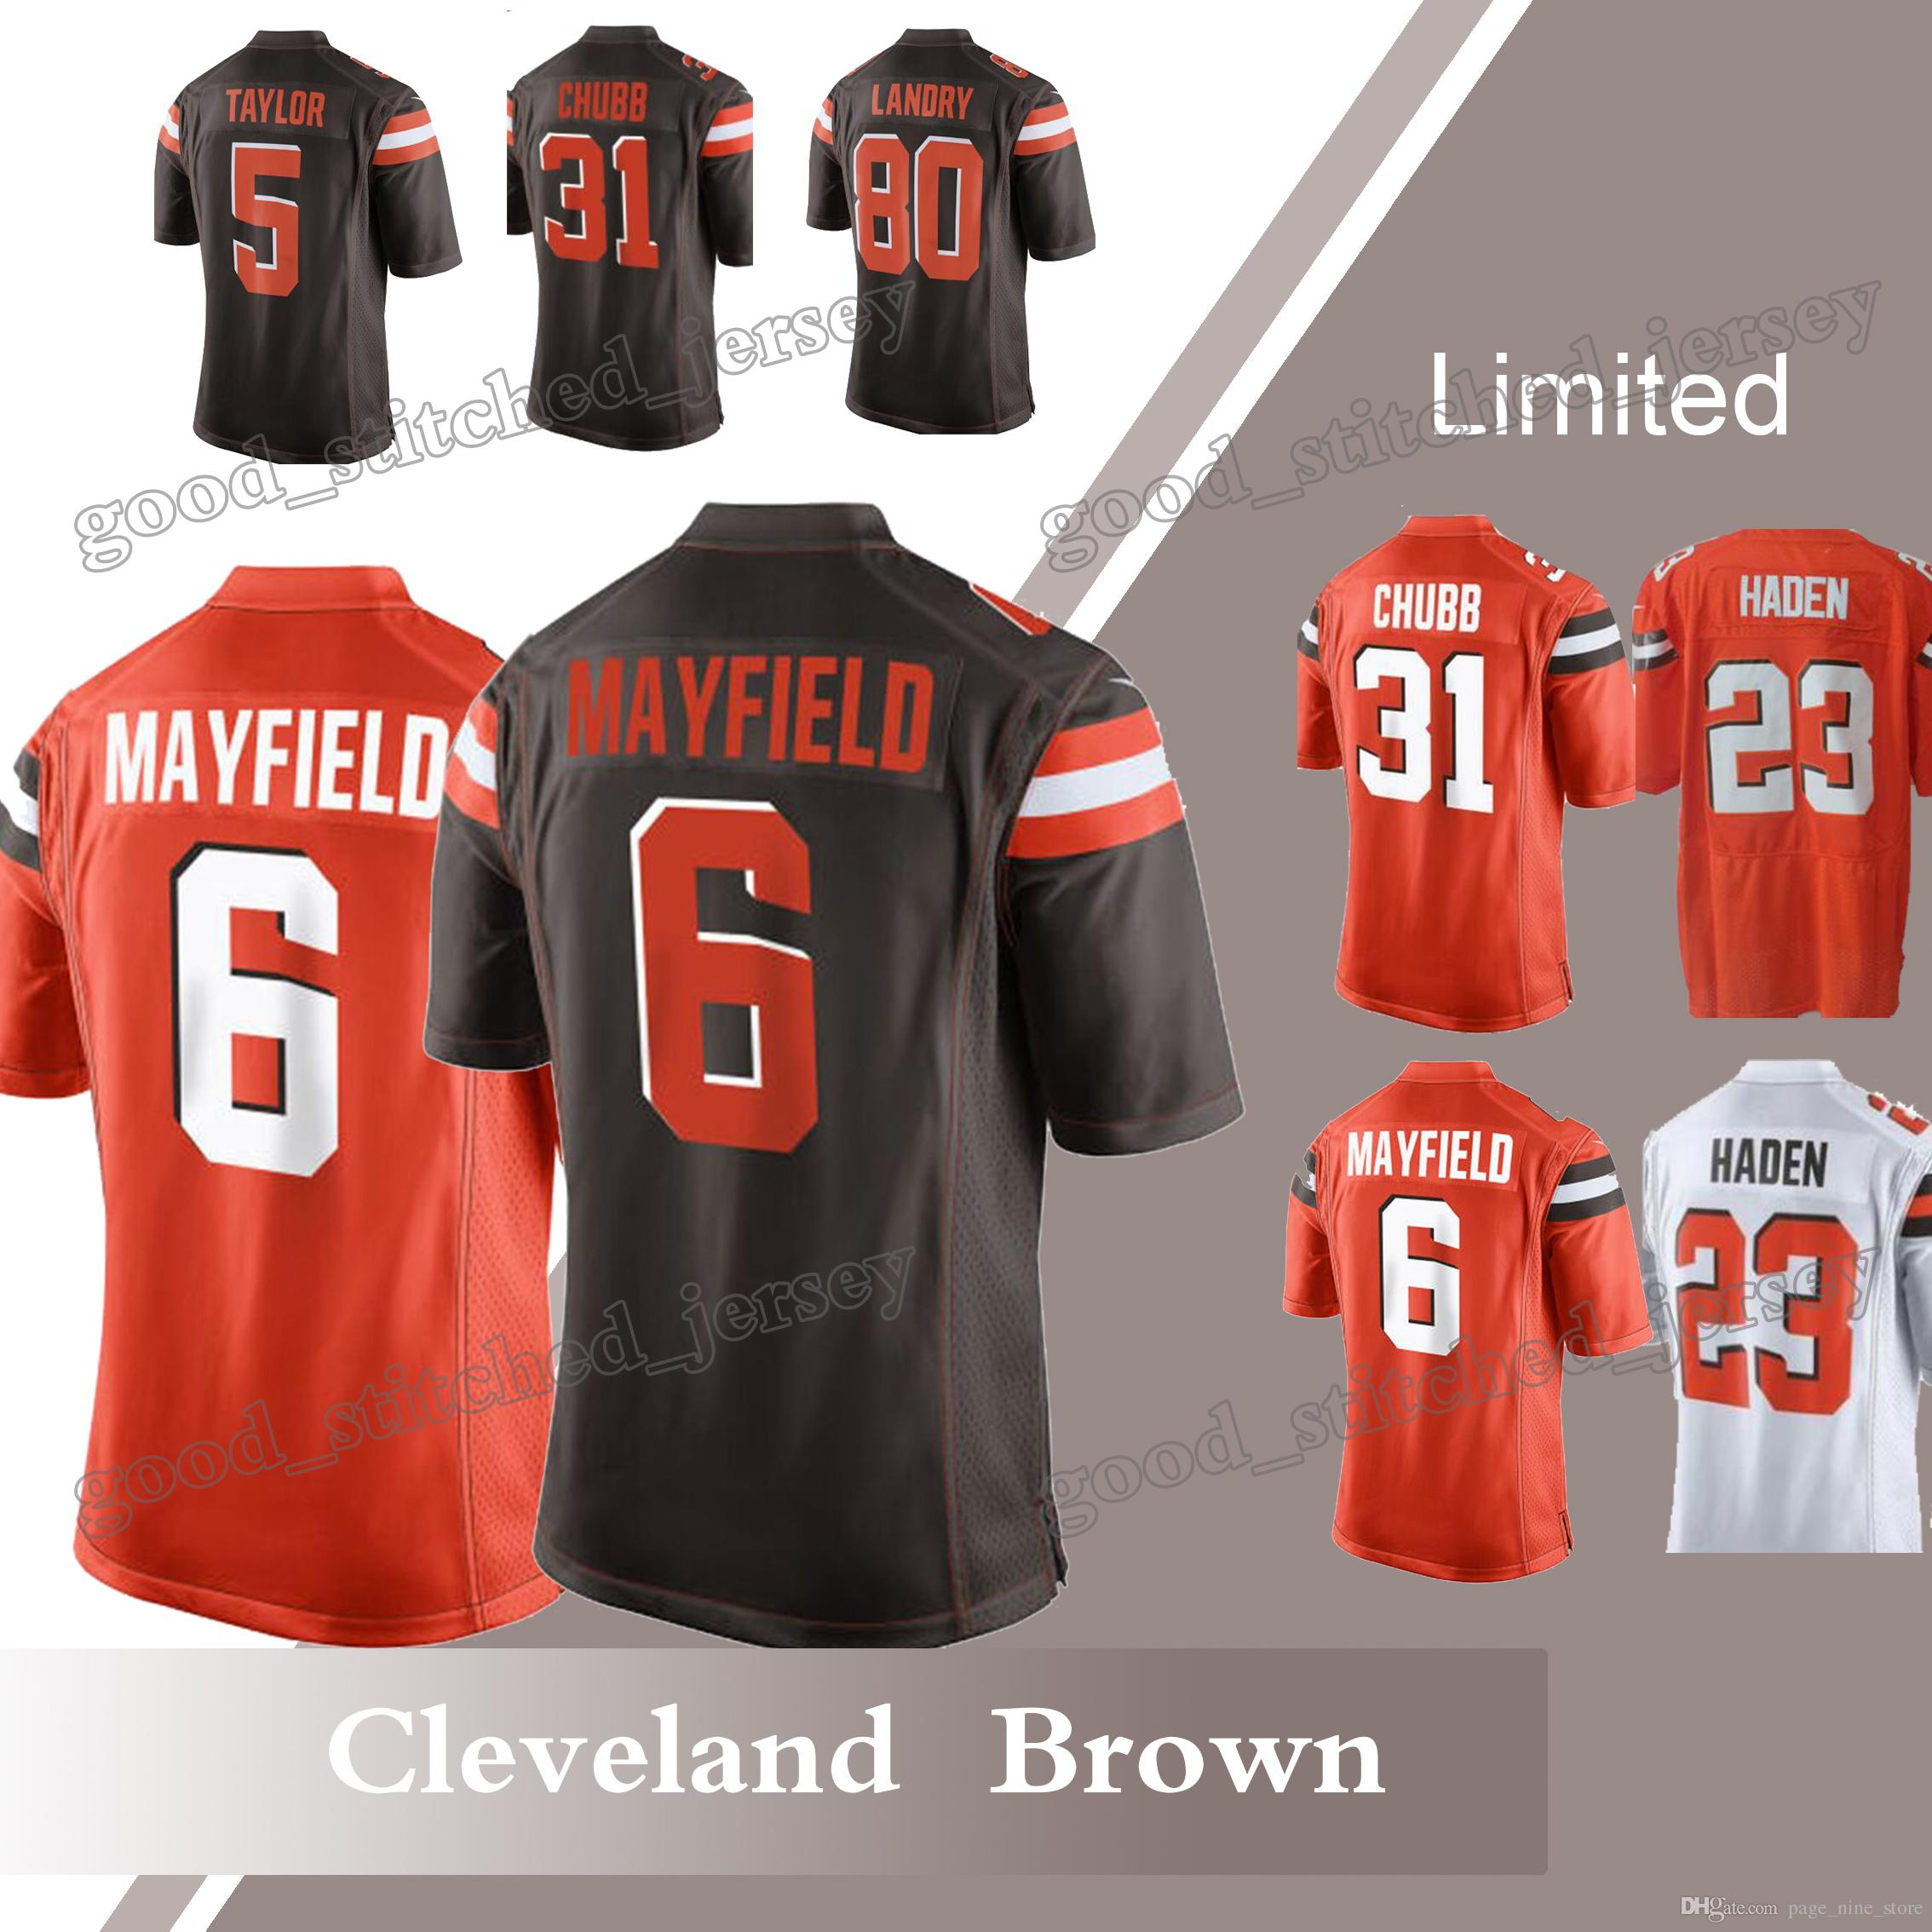 7665b76a3f7 cleveland browns jersey dhgate